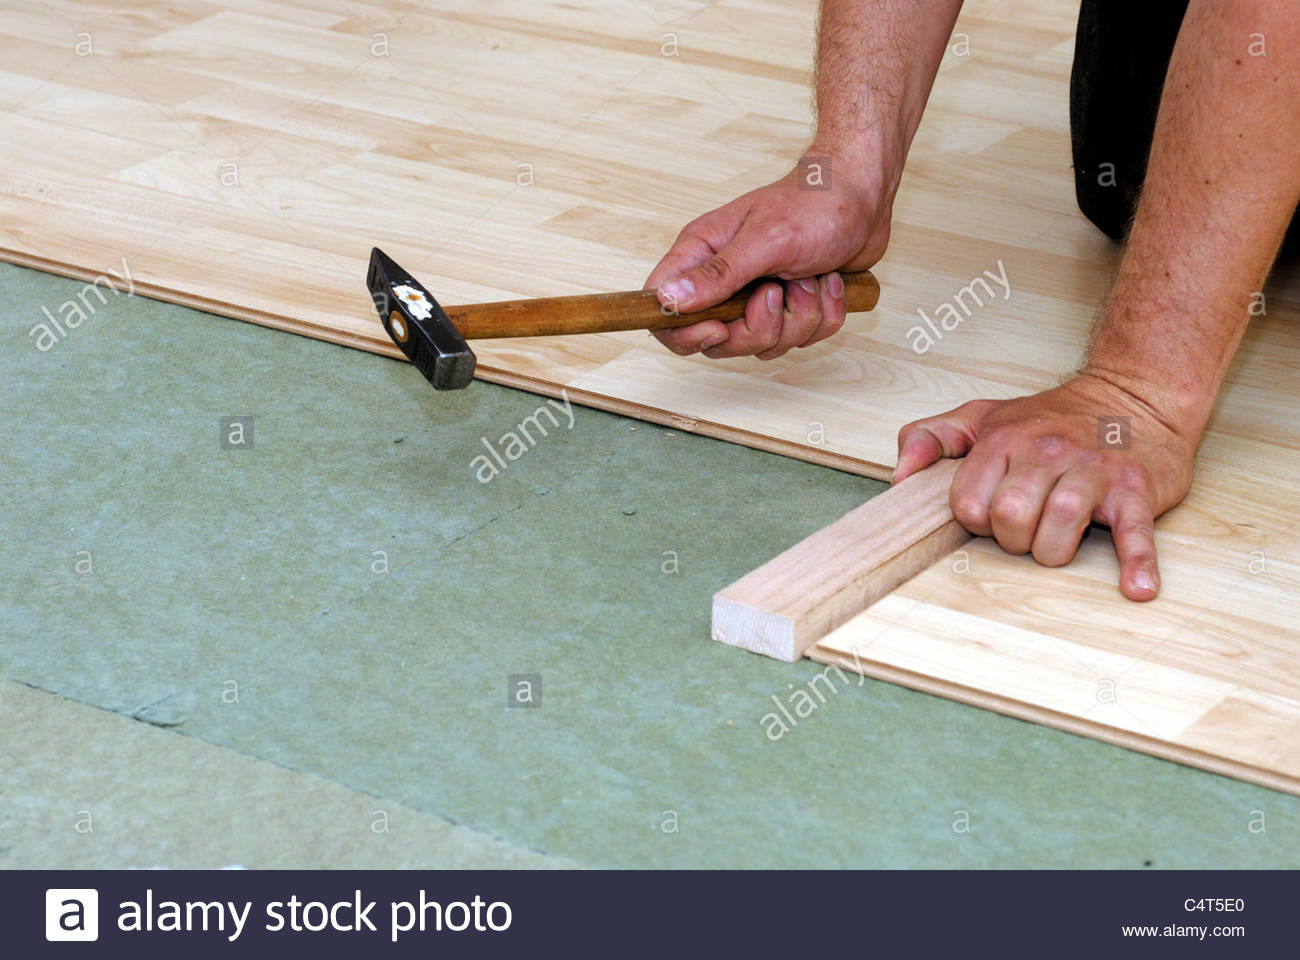 Laminate Flooring Stock Photos & Laminate Flooring Stock Images - Alamy